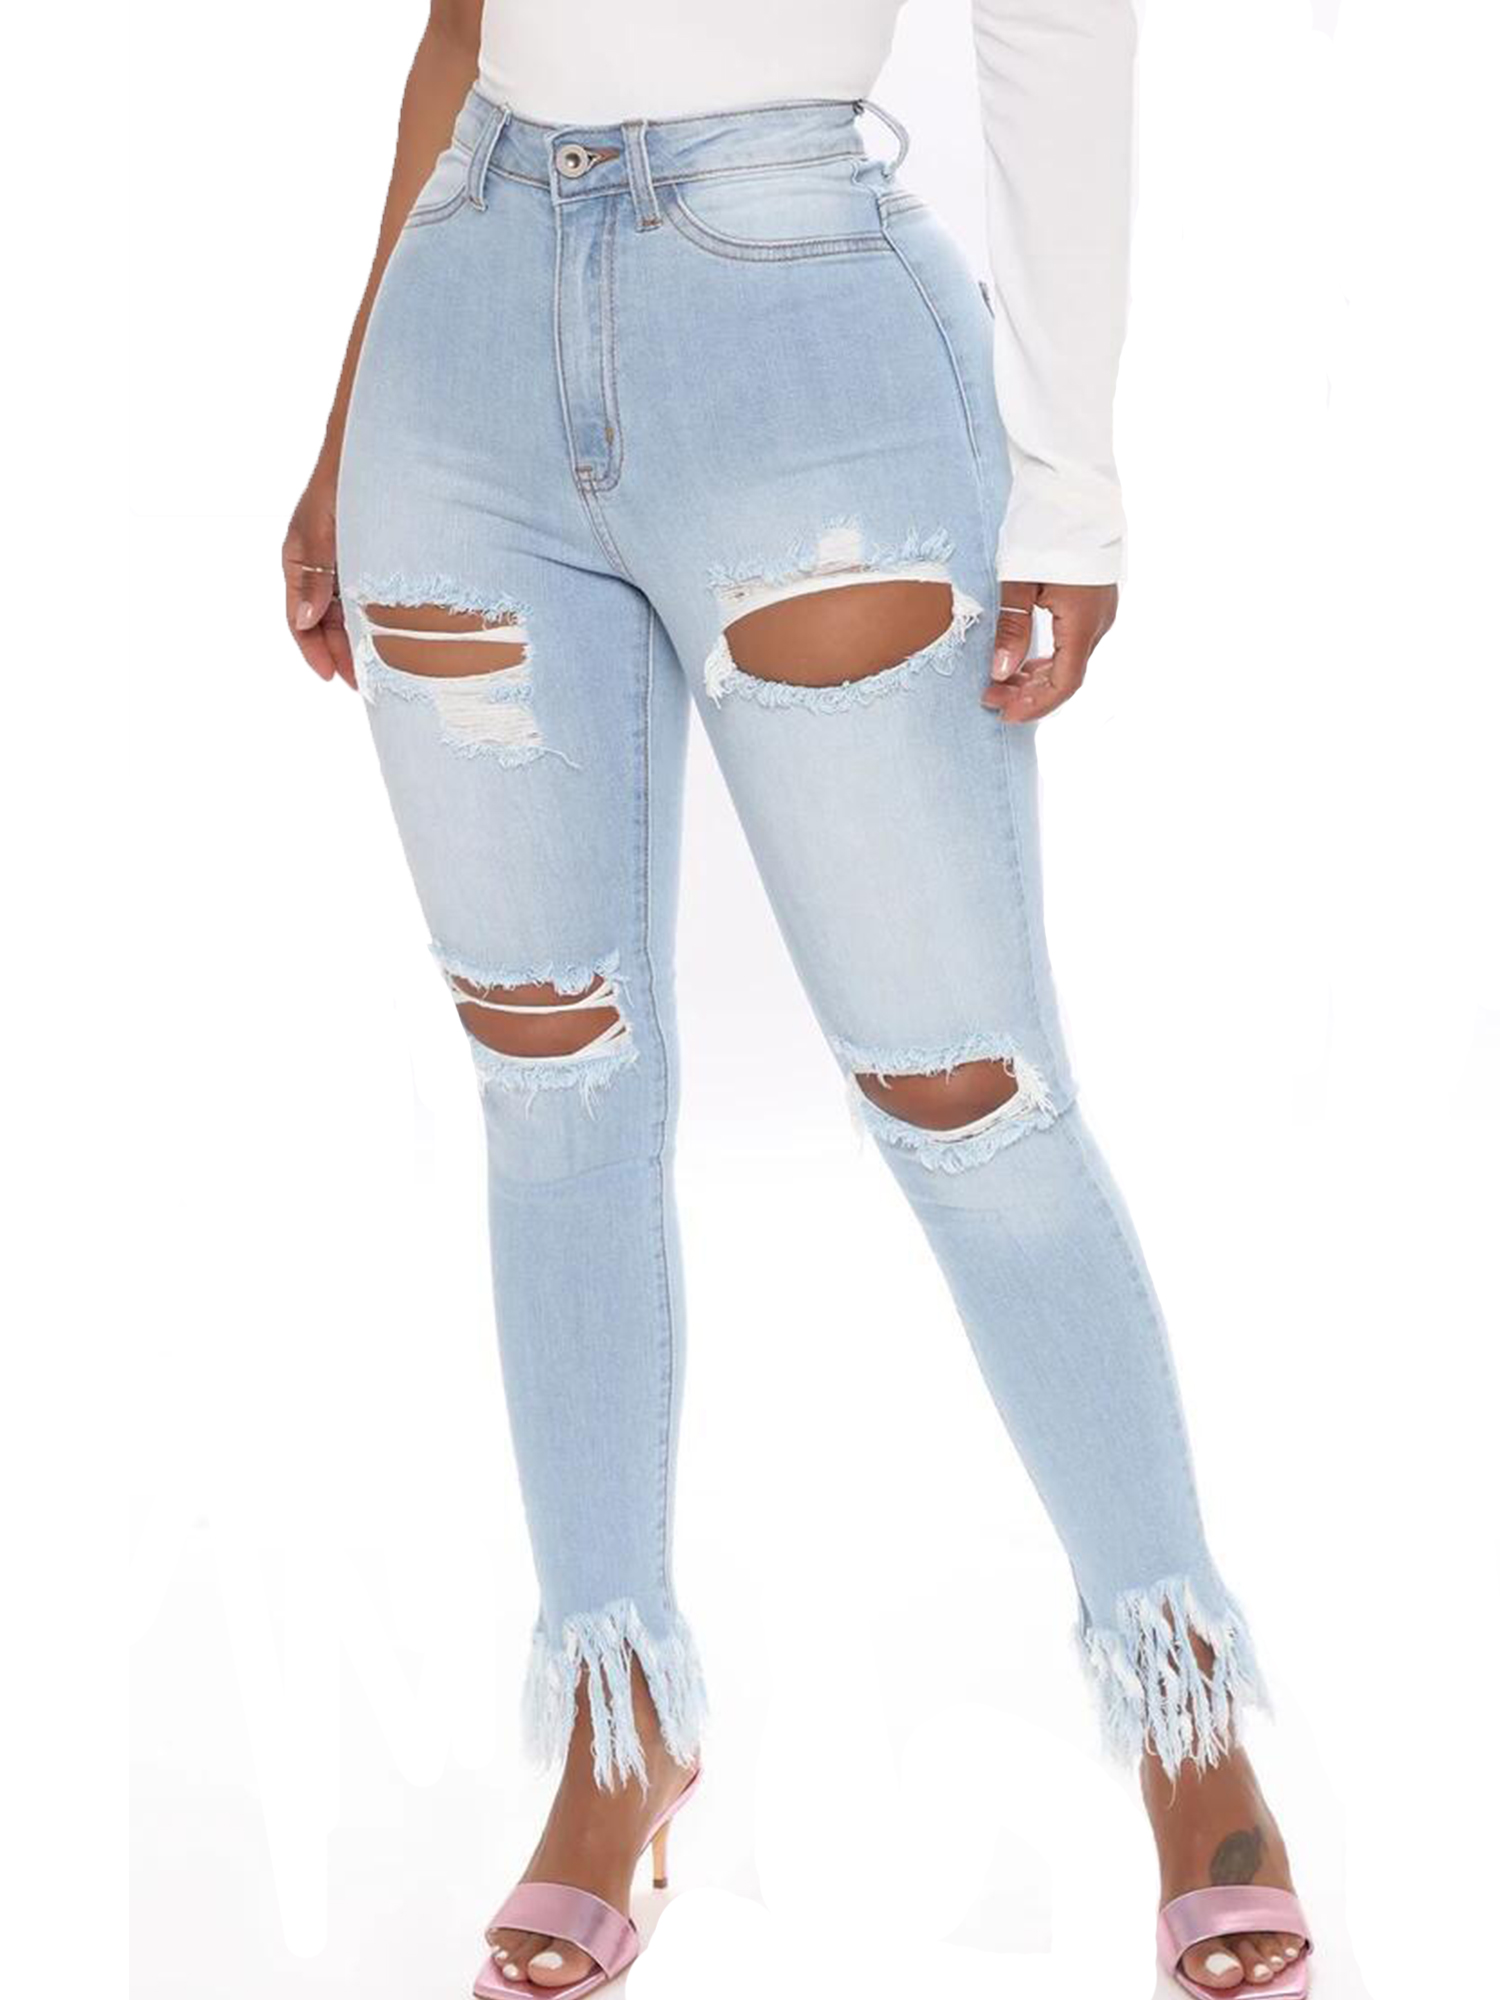 Emma Womens High Waisted Pencil Jeans Skinny Destroyed Ripped Hole Denim Pants Long Stretch Trousers Loose Plus